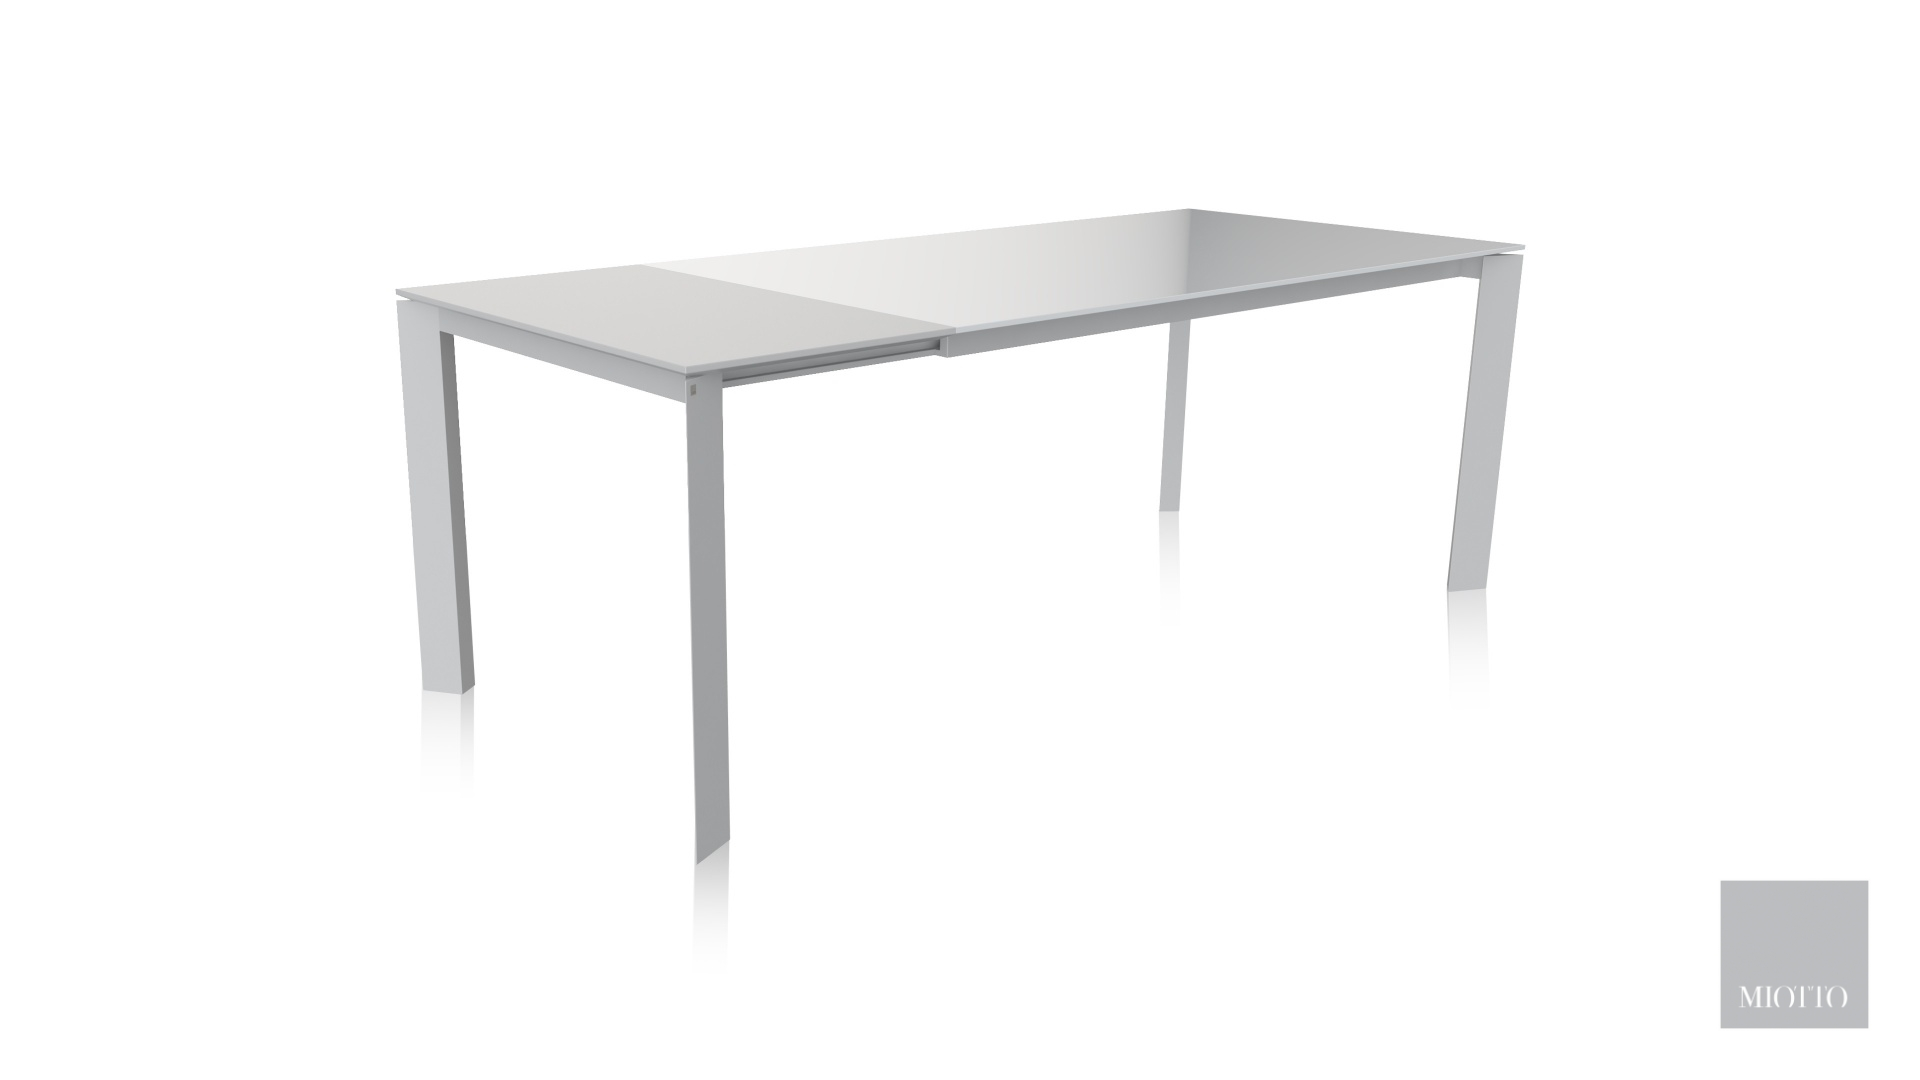 miotto_adotto DT T white open2 miotto dining table